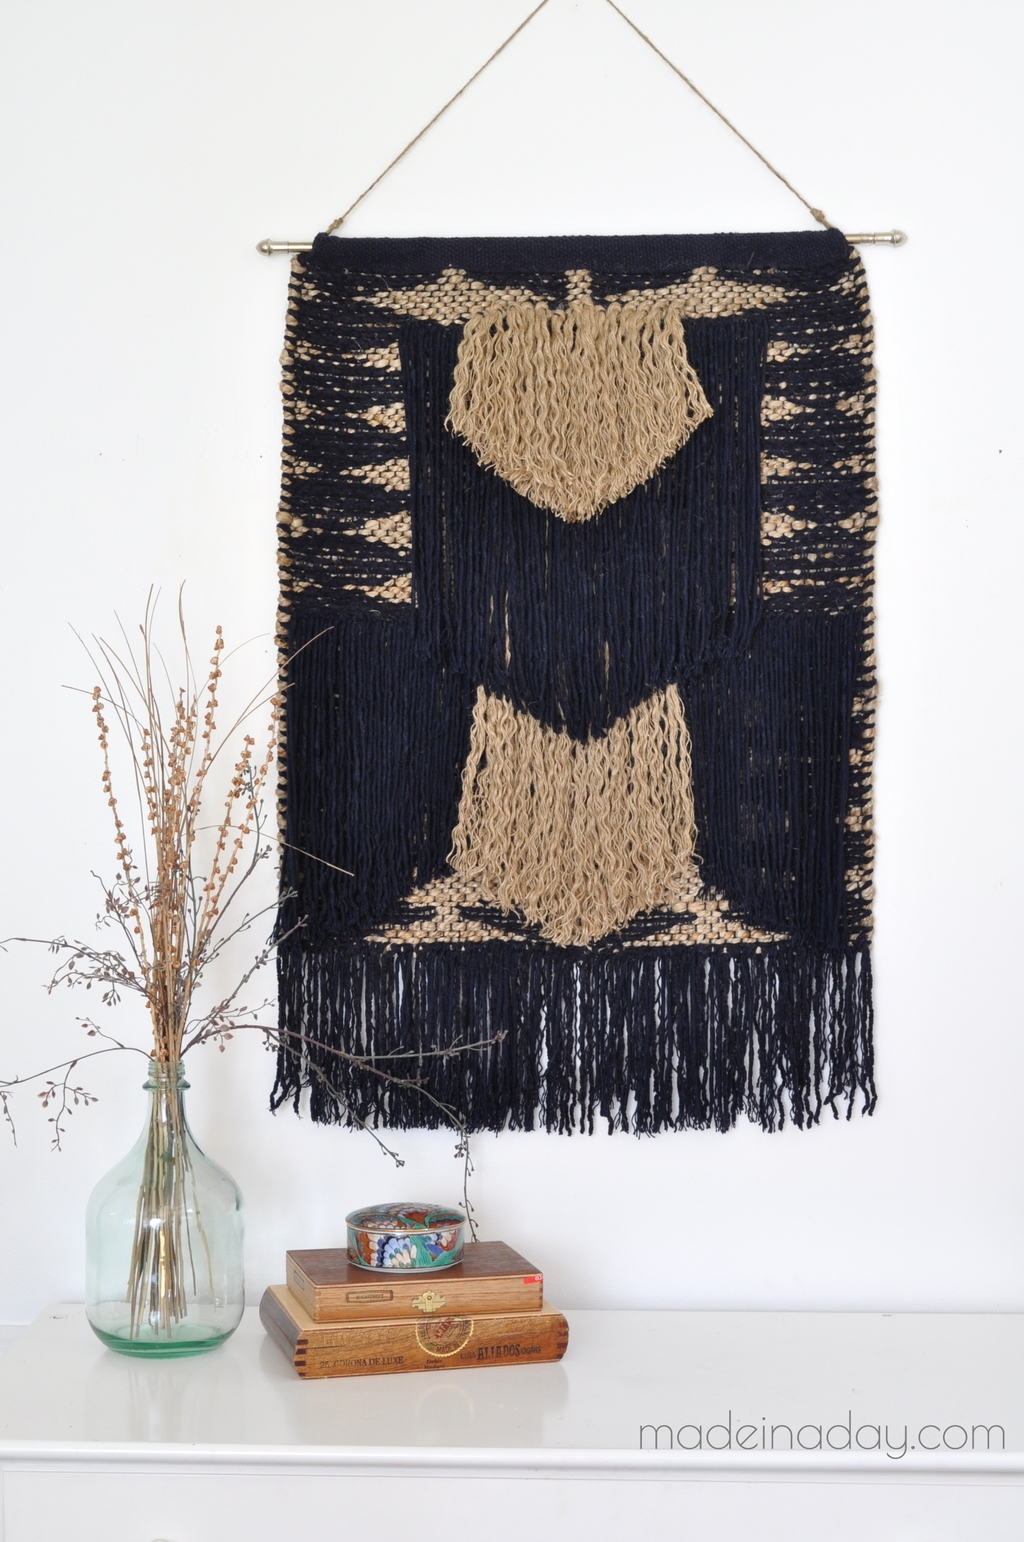 DIY large fringe tapestry from a rug